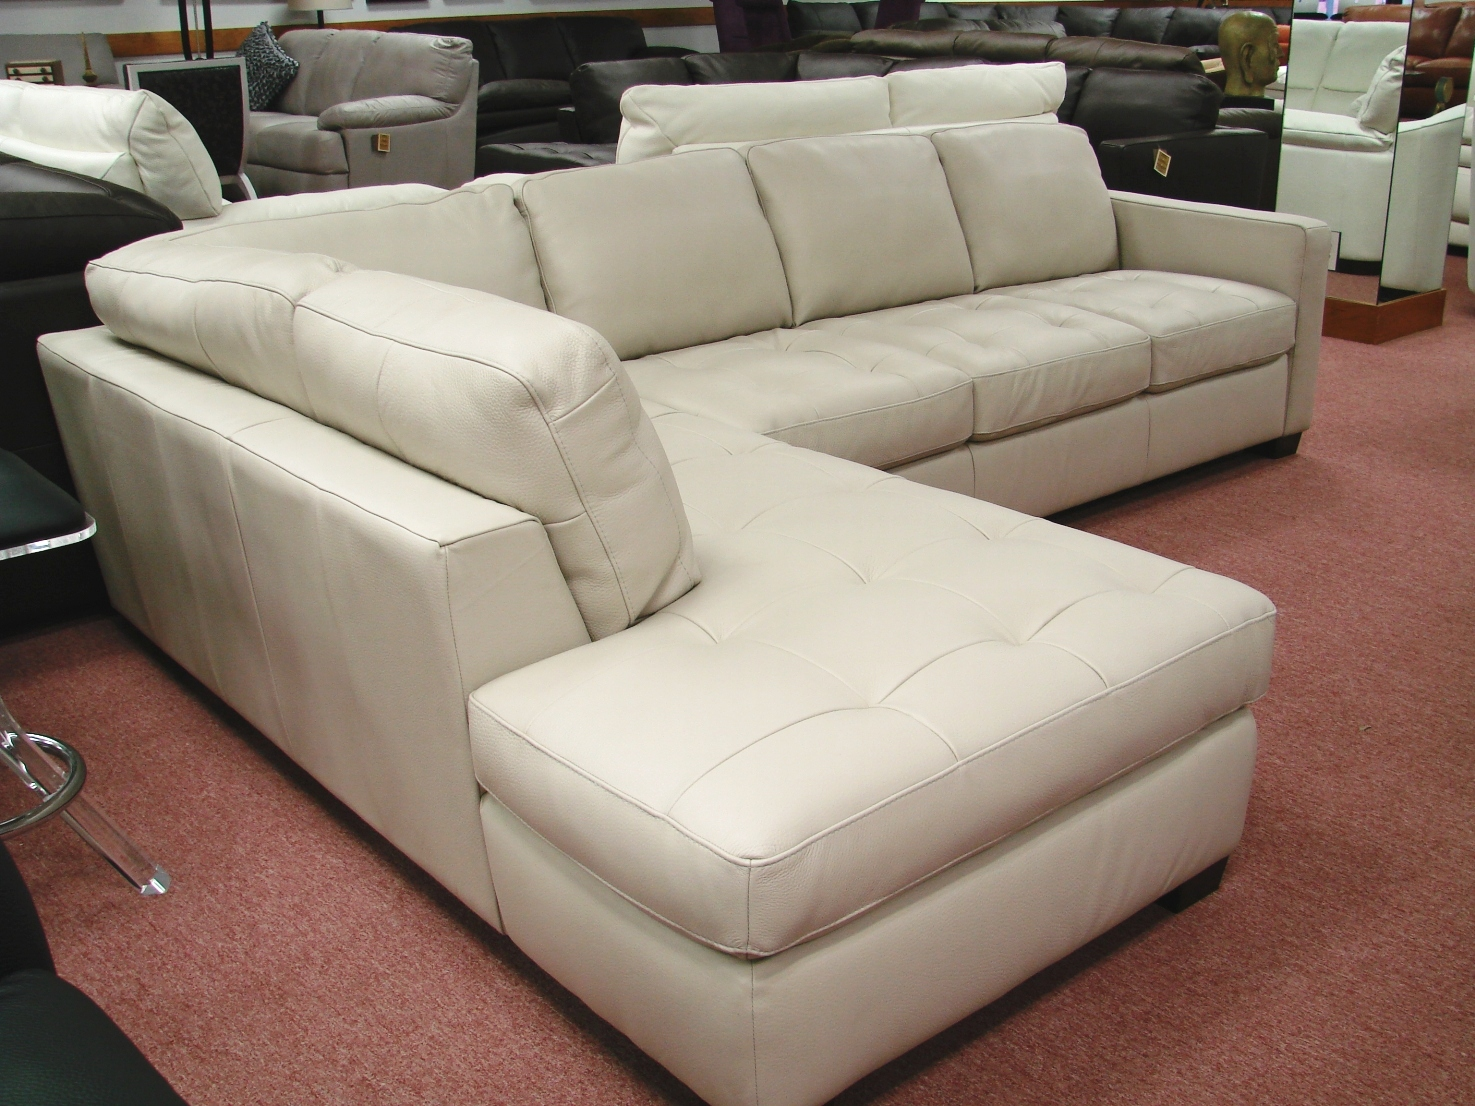 Natuzzi Leather Sectional On Sale Natuzzi Sofa On Sale View Original Updated On 10 18 2014